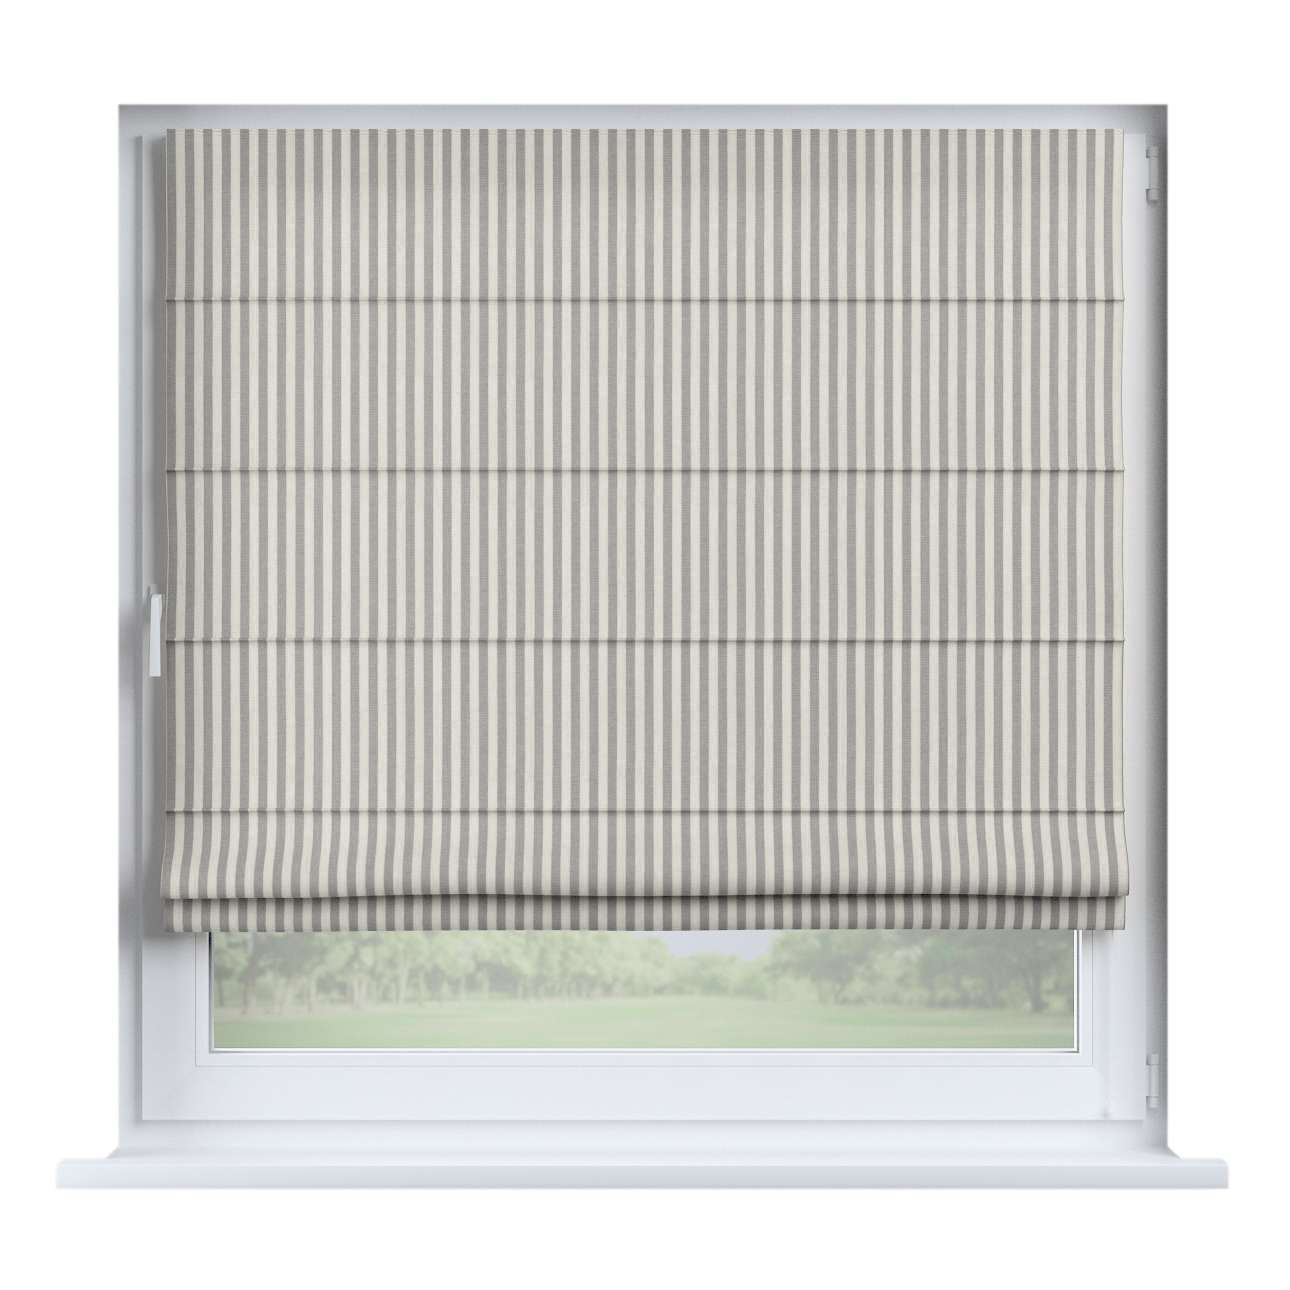 Capri roman blind 80 x 170 cm (31.5 x 67 inch) in collection Quadro, fabric: 136-12